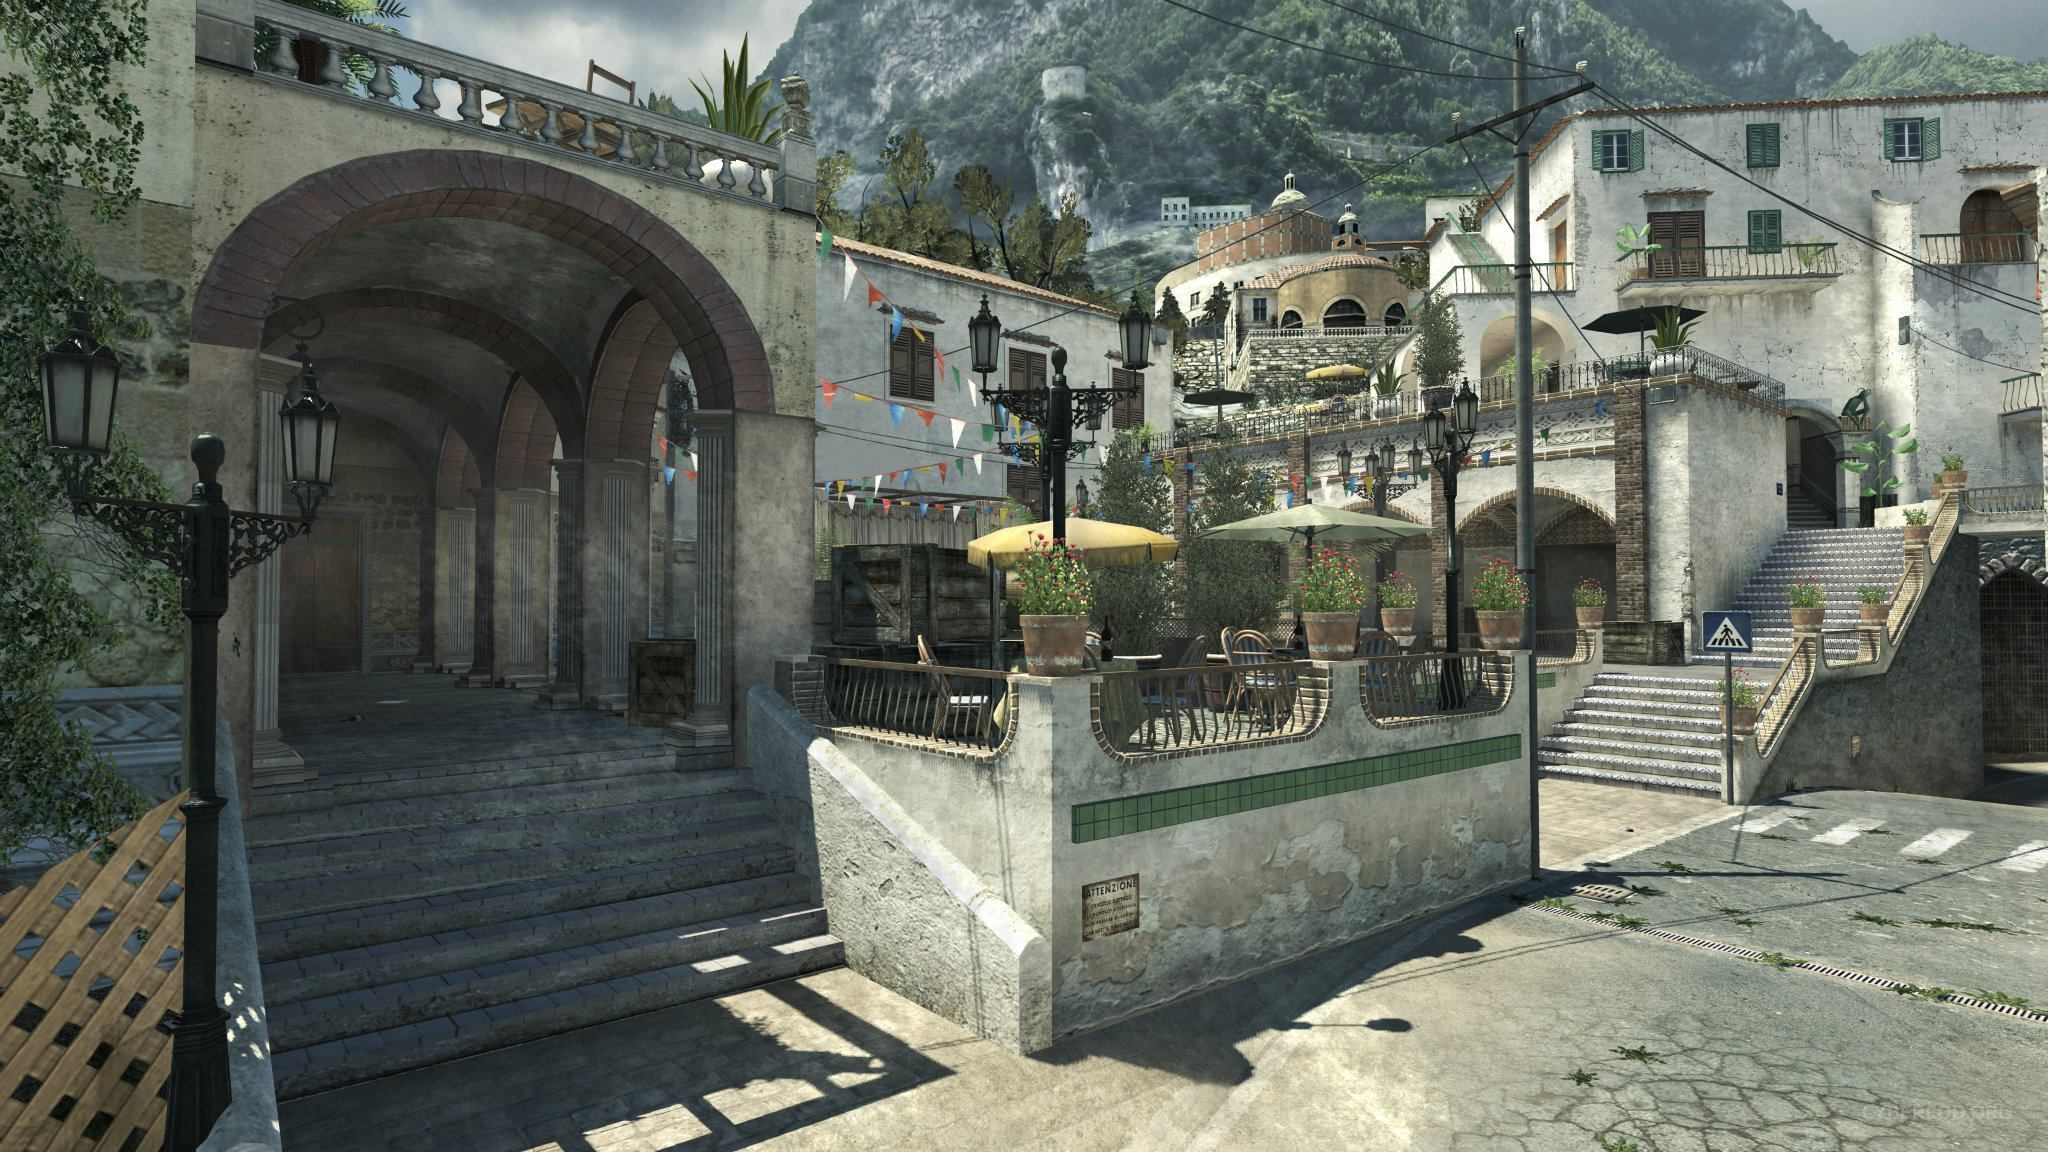 Call of Duty: Modern Warfare 3 (First DLC pack) Piazza market square